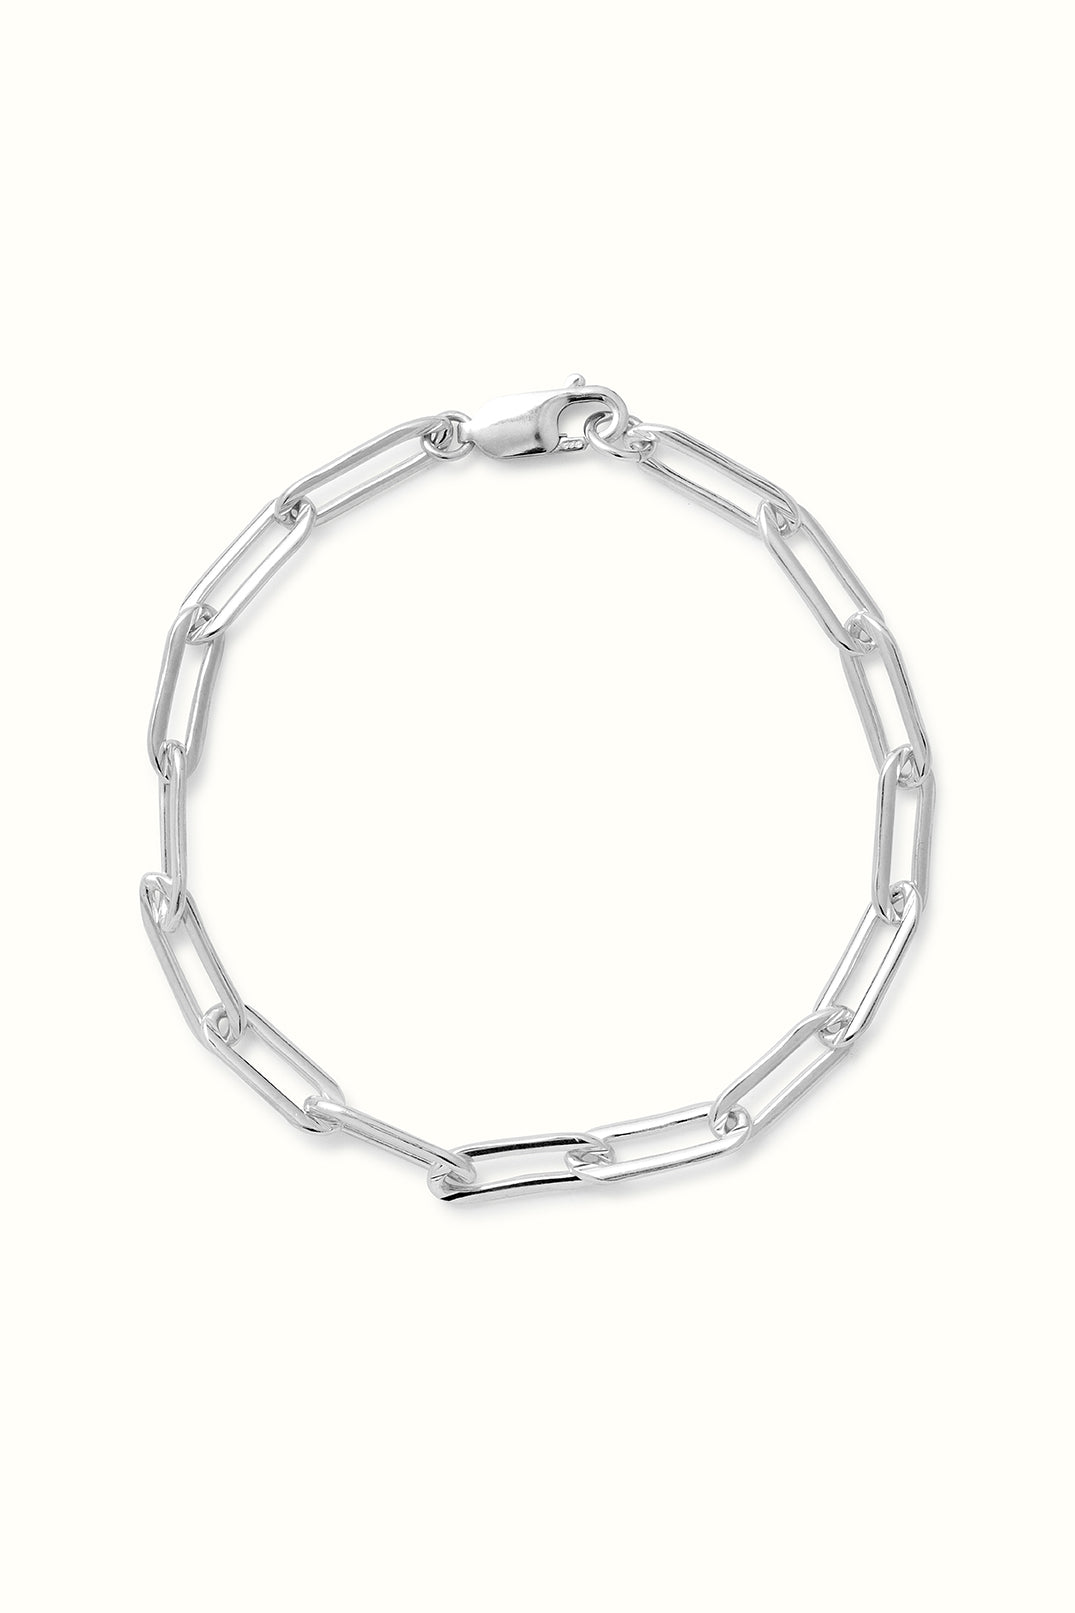 a product close up of a silver chunky paperclip chain bracelet on a white surface